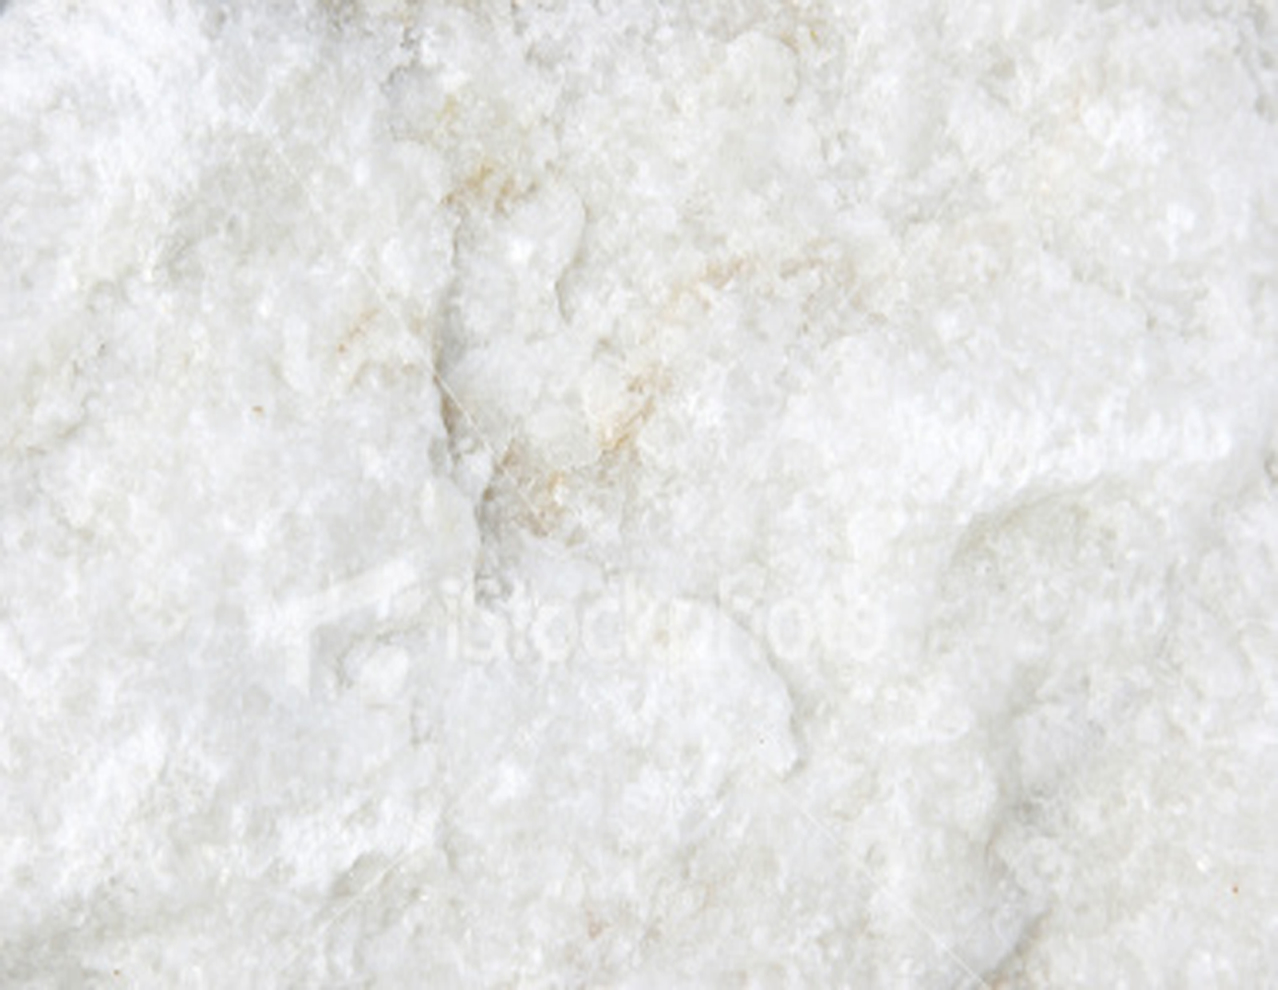 White Marble Texture Background Download Photo White